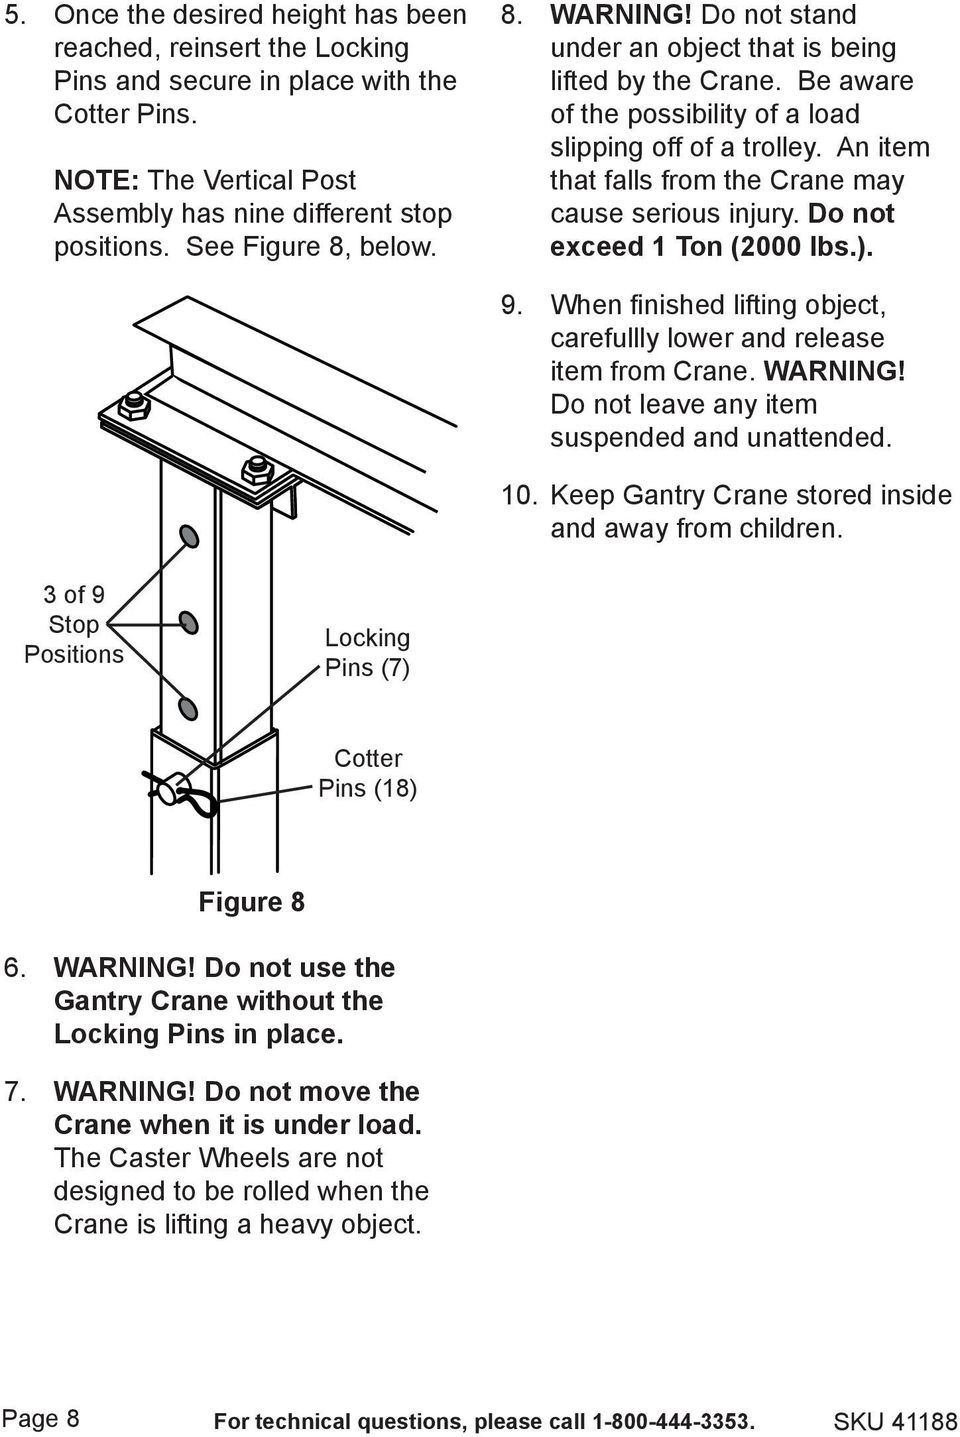 An item that falls from the Crane may cause serious injury. Do not exceed 1 Ton (2000 lbs.). 9. When finished lifting object, carefullly lower and release item from Crane. WARNING!